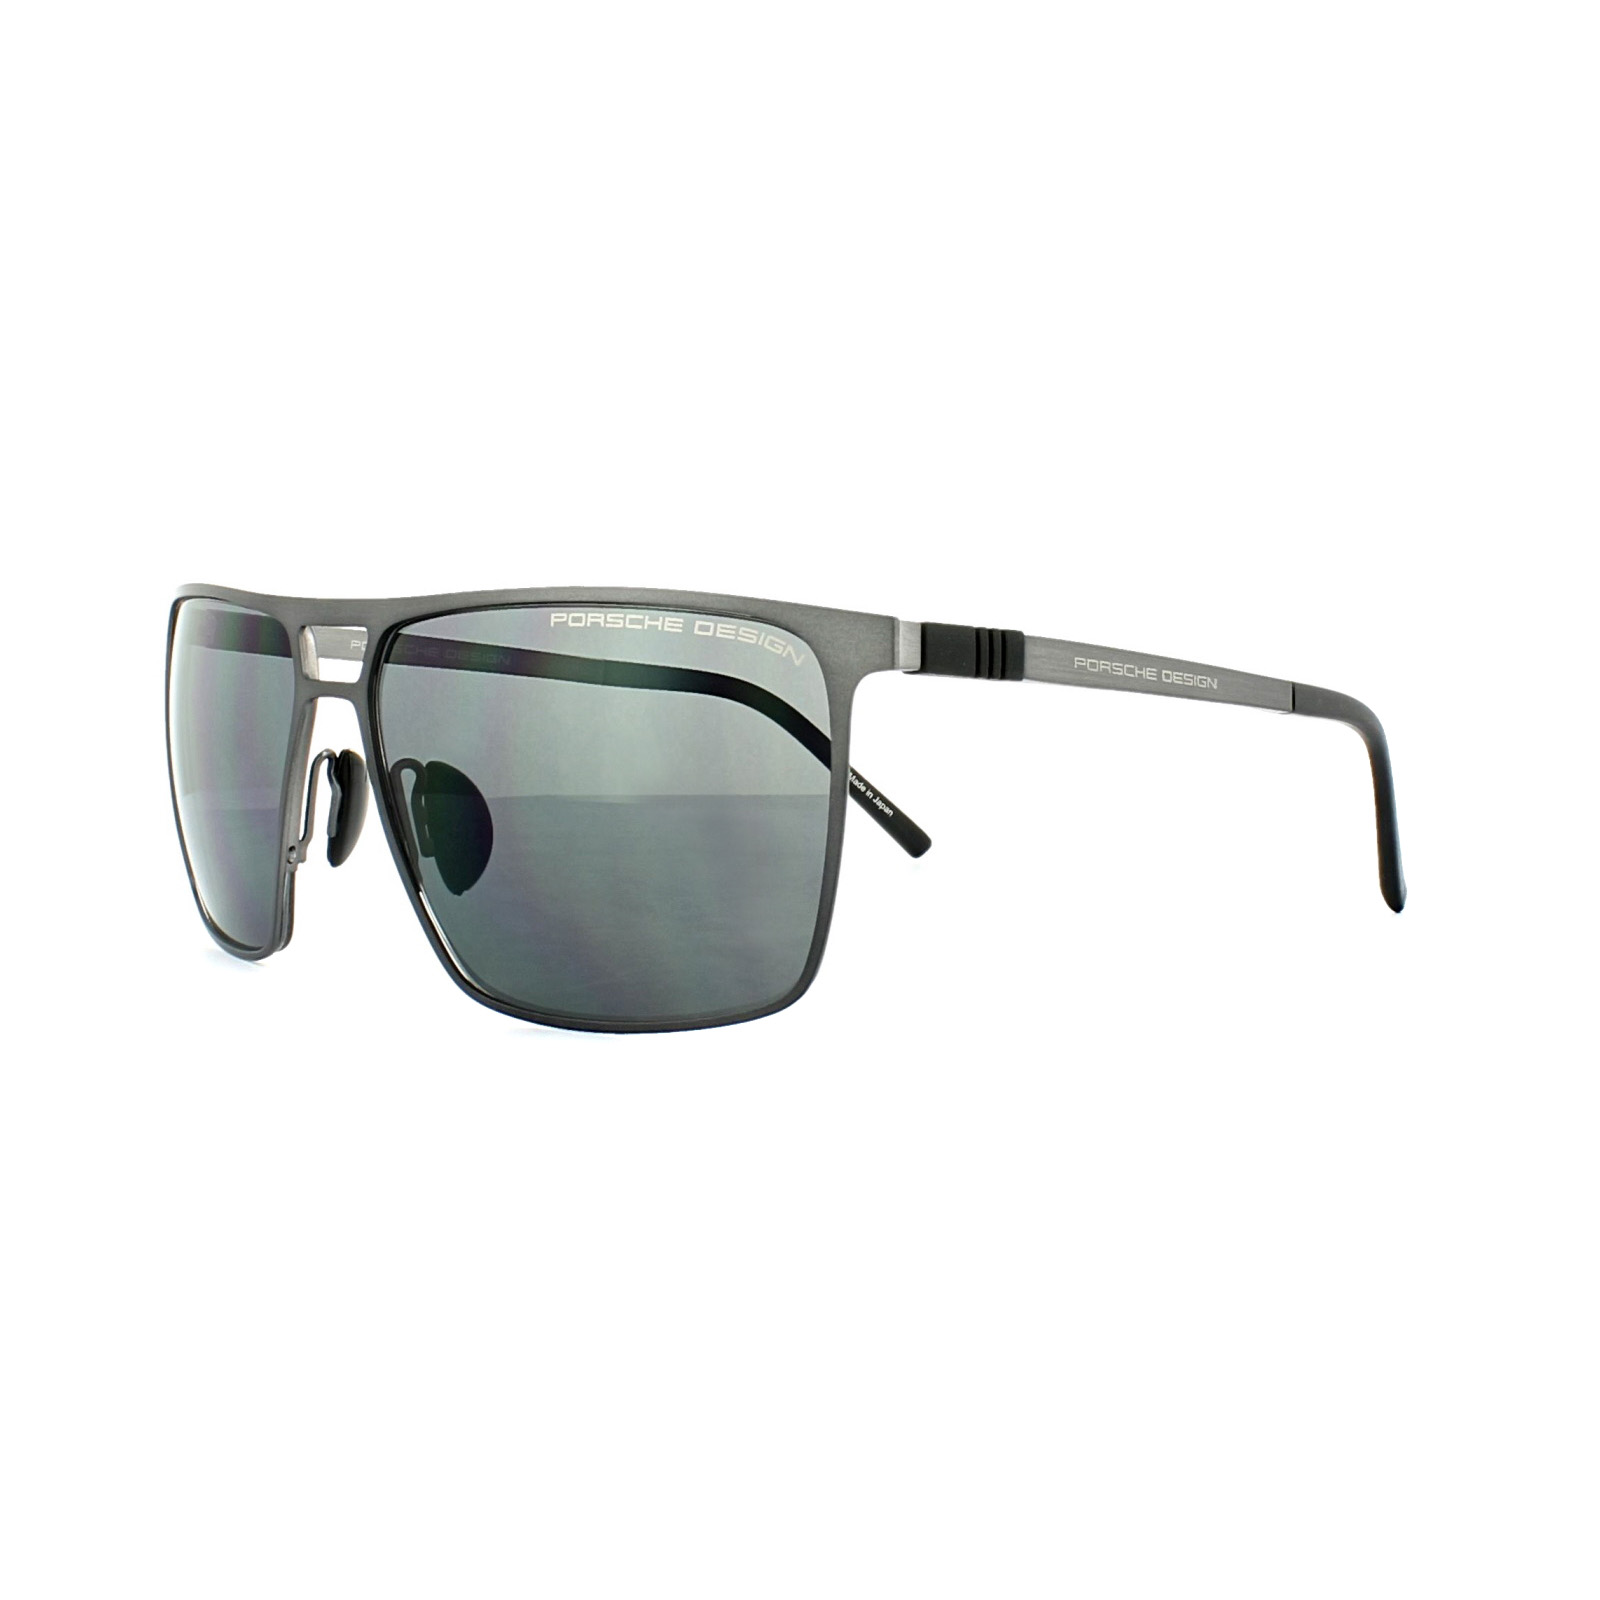 38b402c395 Cheap Porsche Design P8610 Sunglasses - Discounted Sunglasses